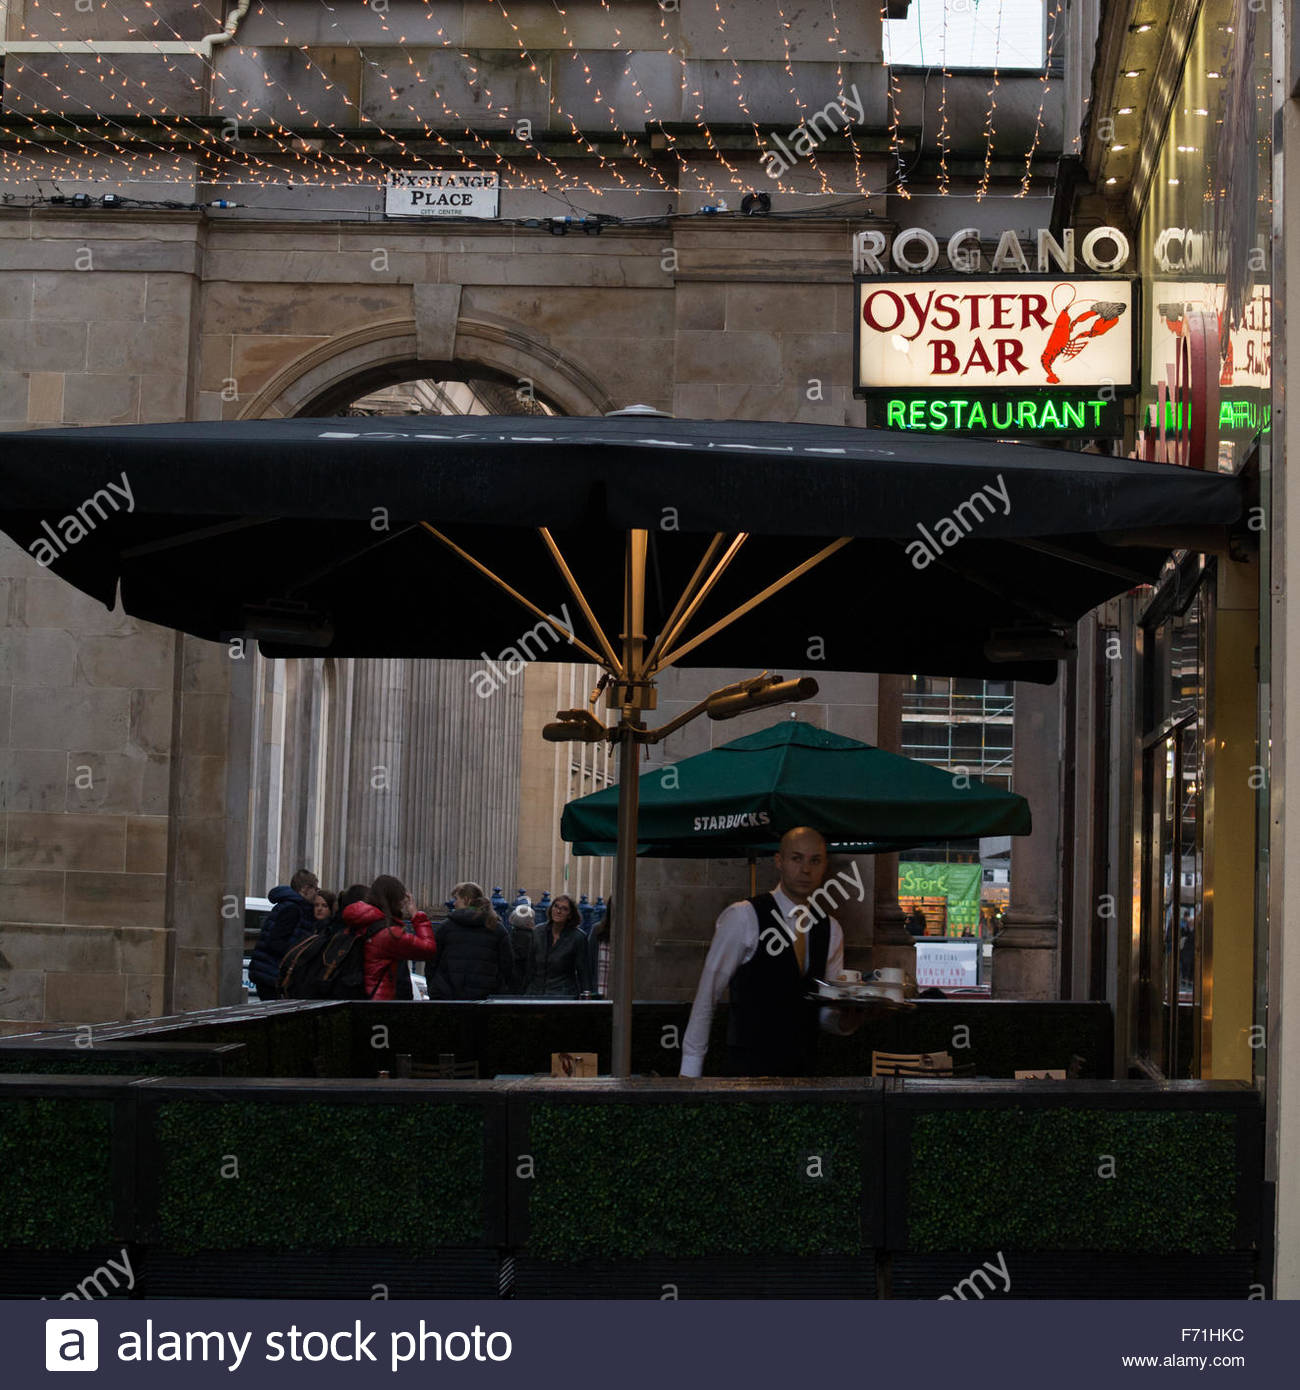 Rogano Oyster Bar Restaurant - the oldest surviving restaurant in Glasgow - open since 1935 - Stock Image